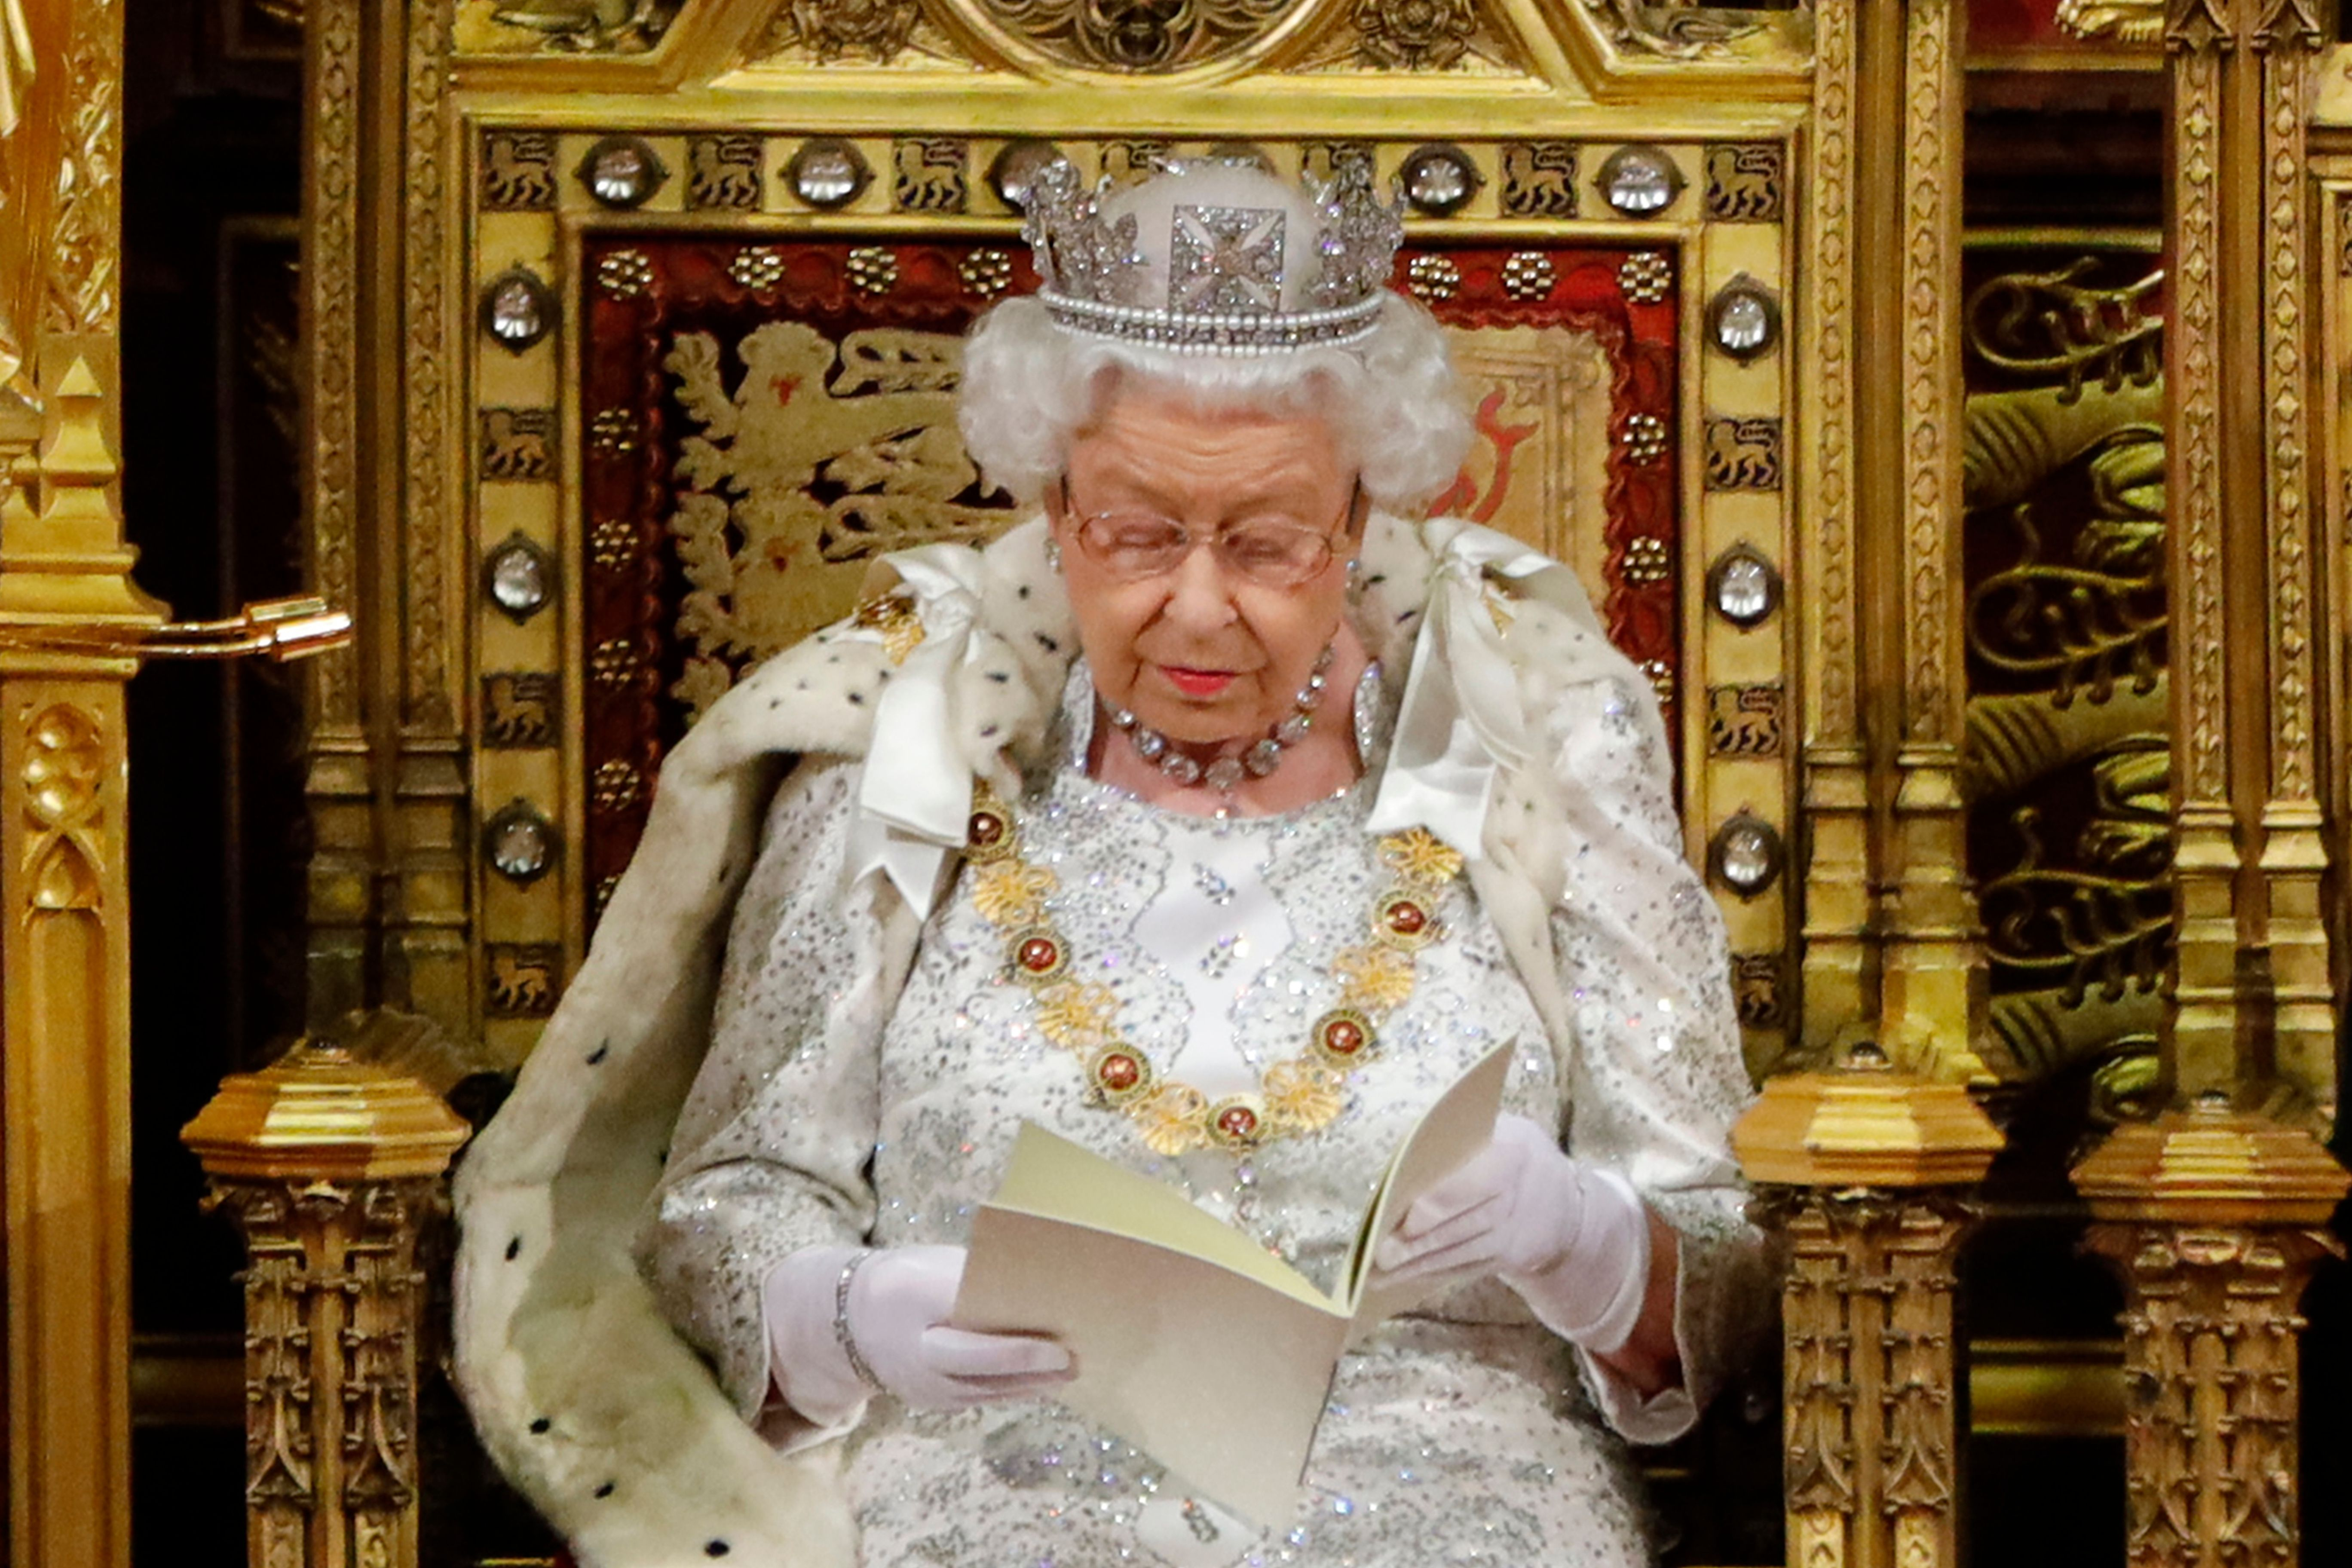 Queen Elizabeth Delivered the Customary Queen's Speech at the State Opening of Parliament